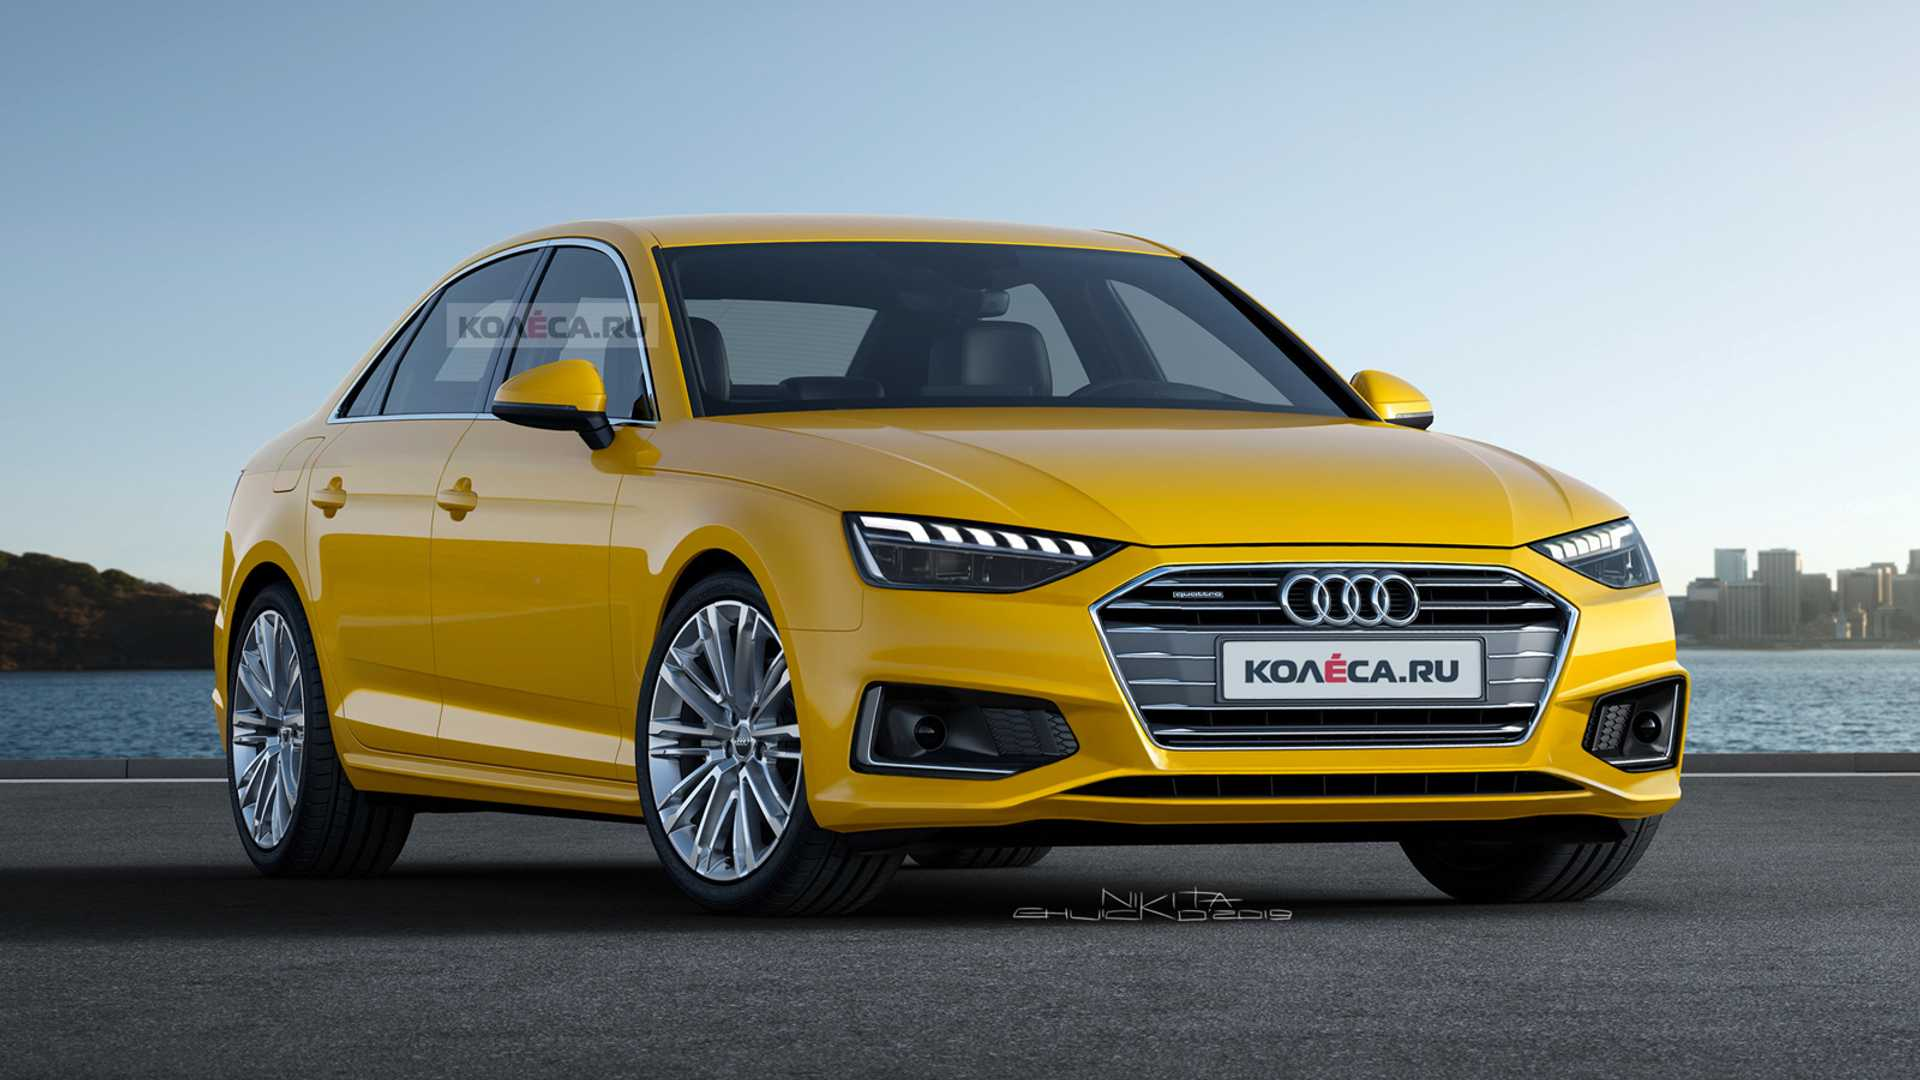 Audi A4 Coupe 2020 Audi A4 Facelift Render Could Pass Off As The Real Deal